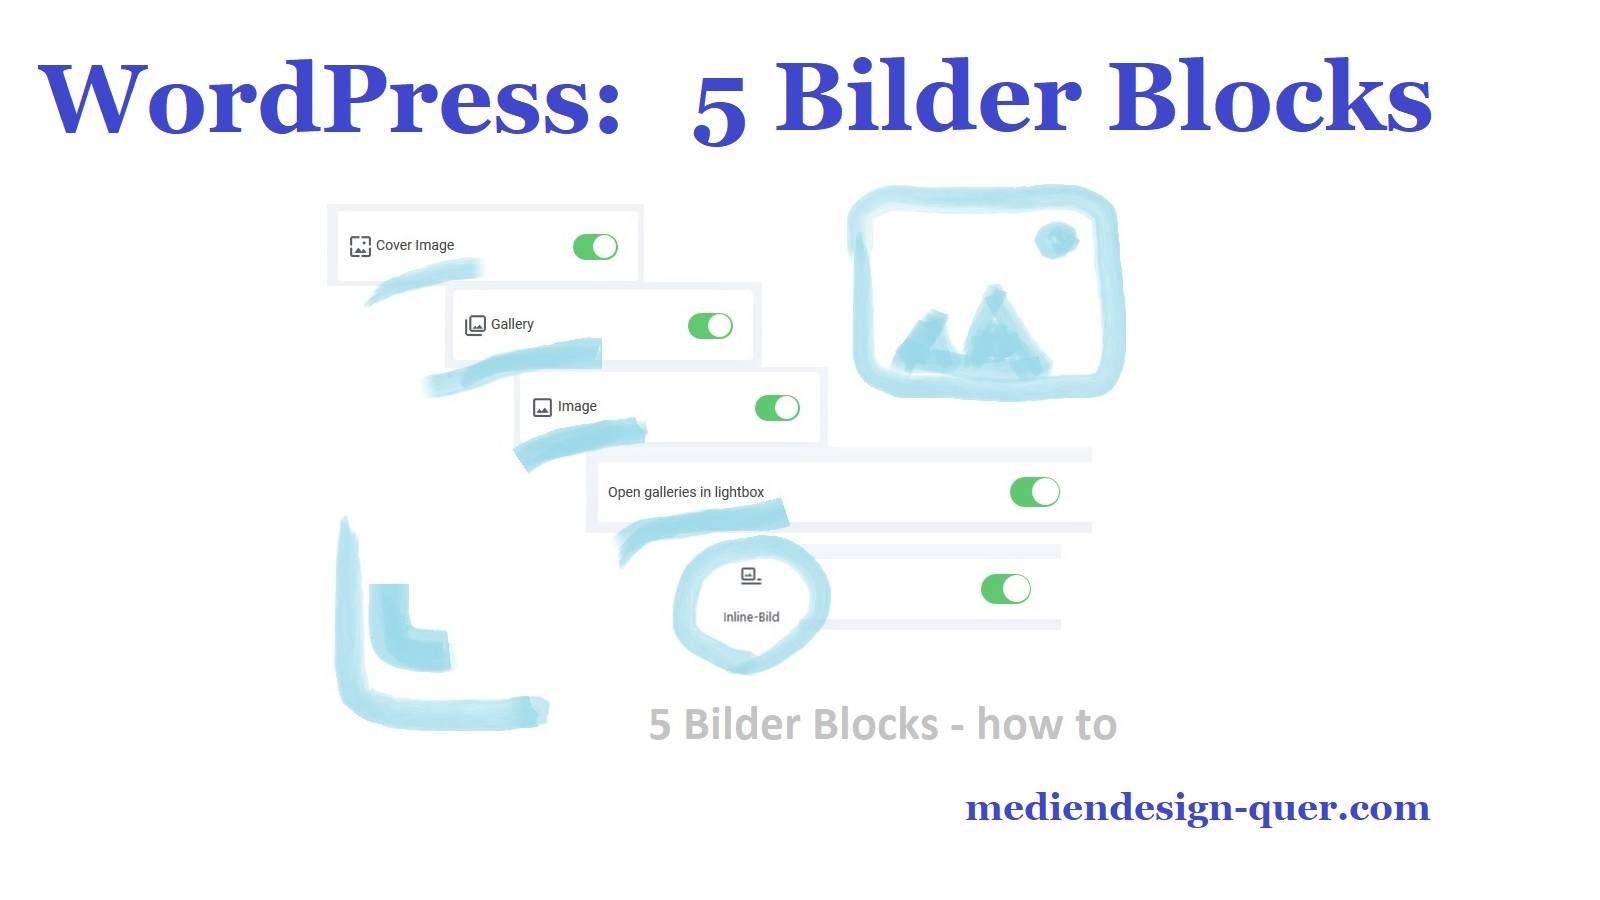 wordpress-5-bilder-blocks